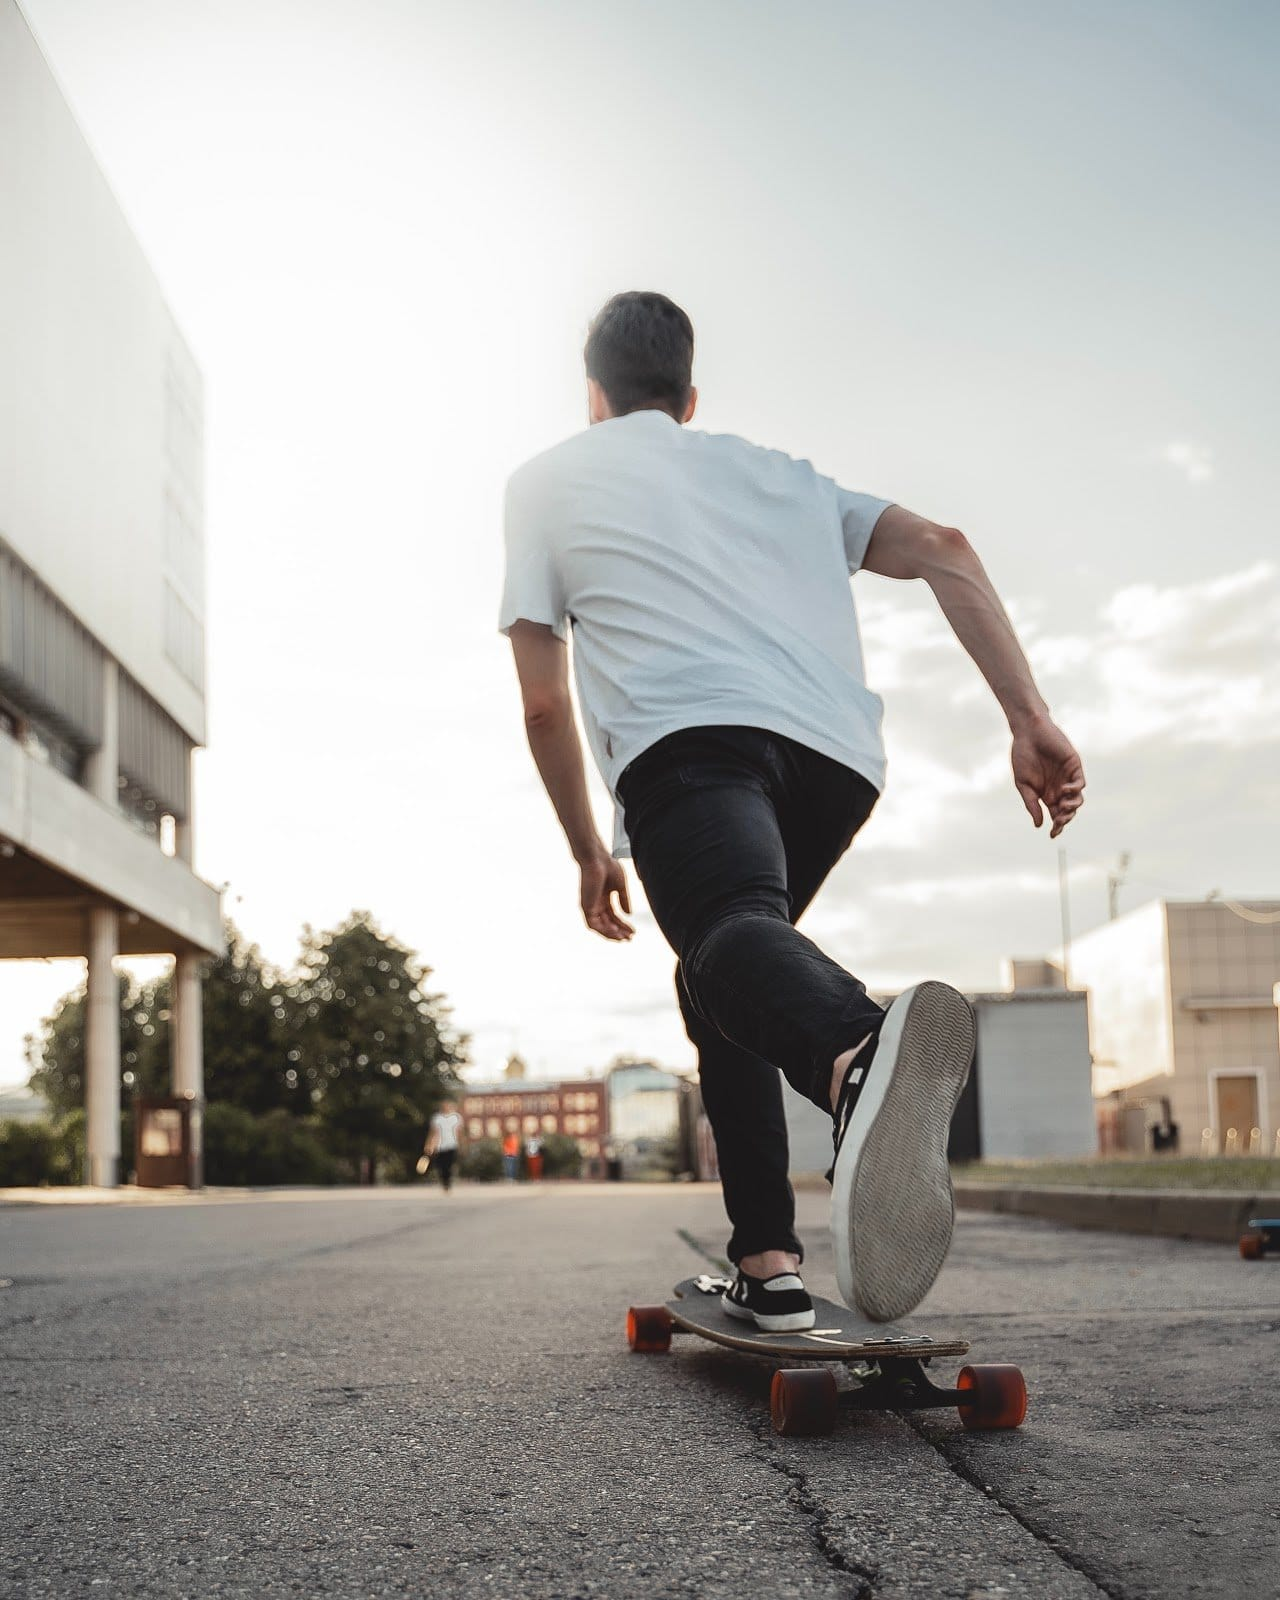 young-man-on-a-skateboard